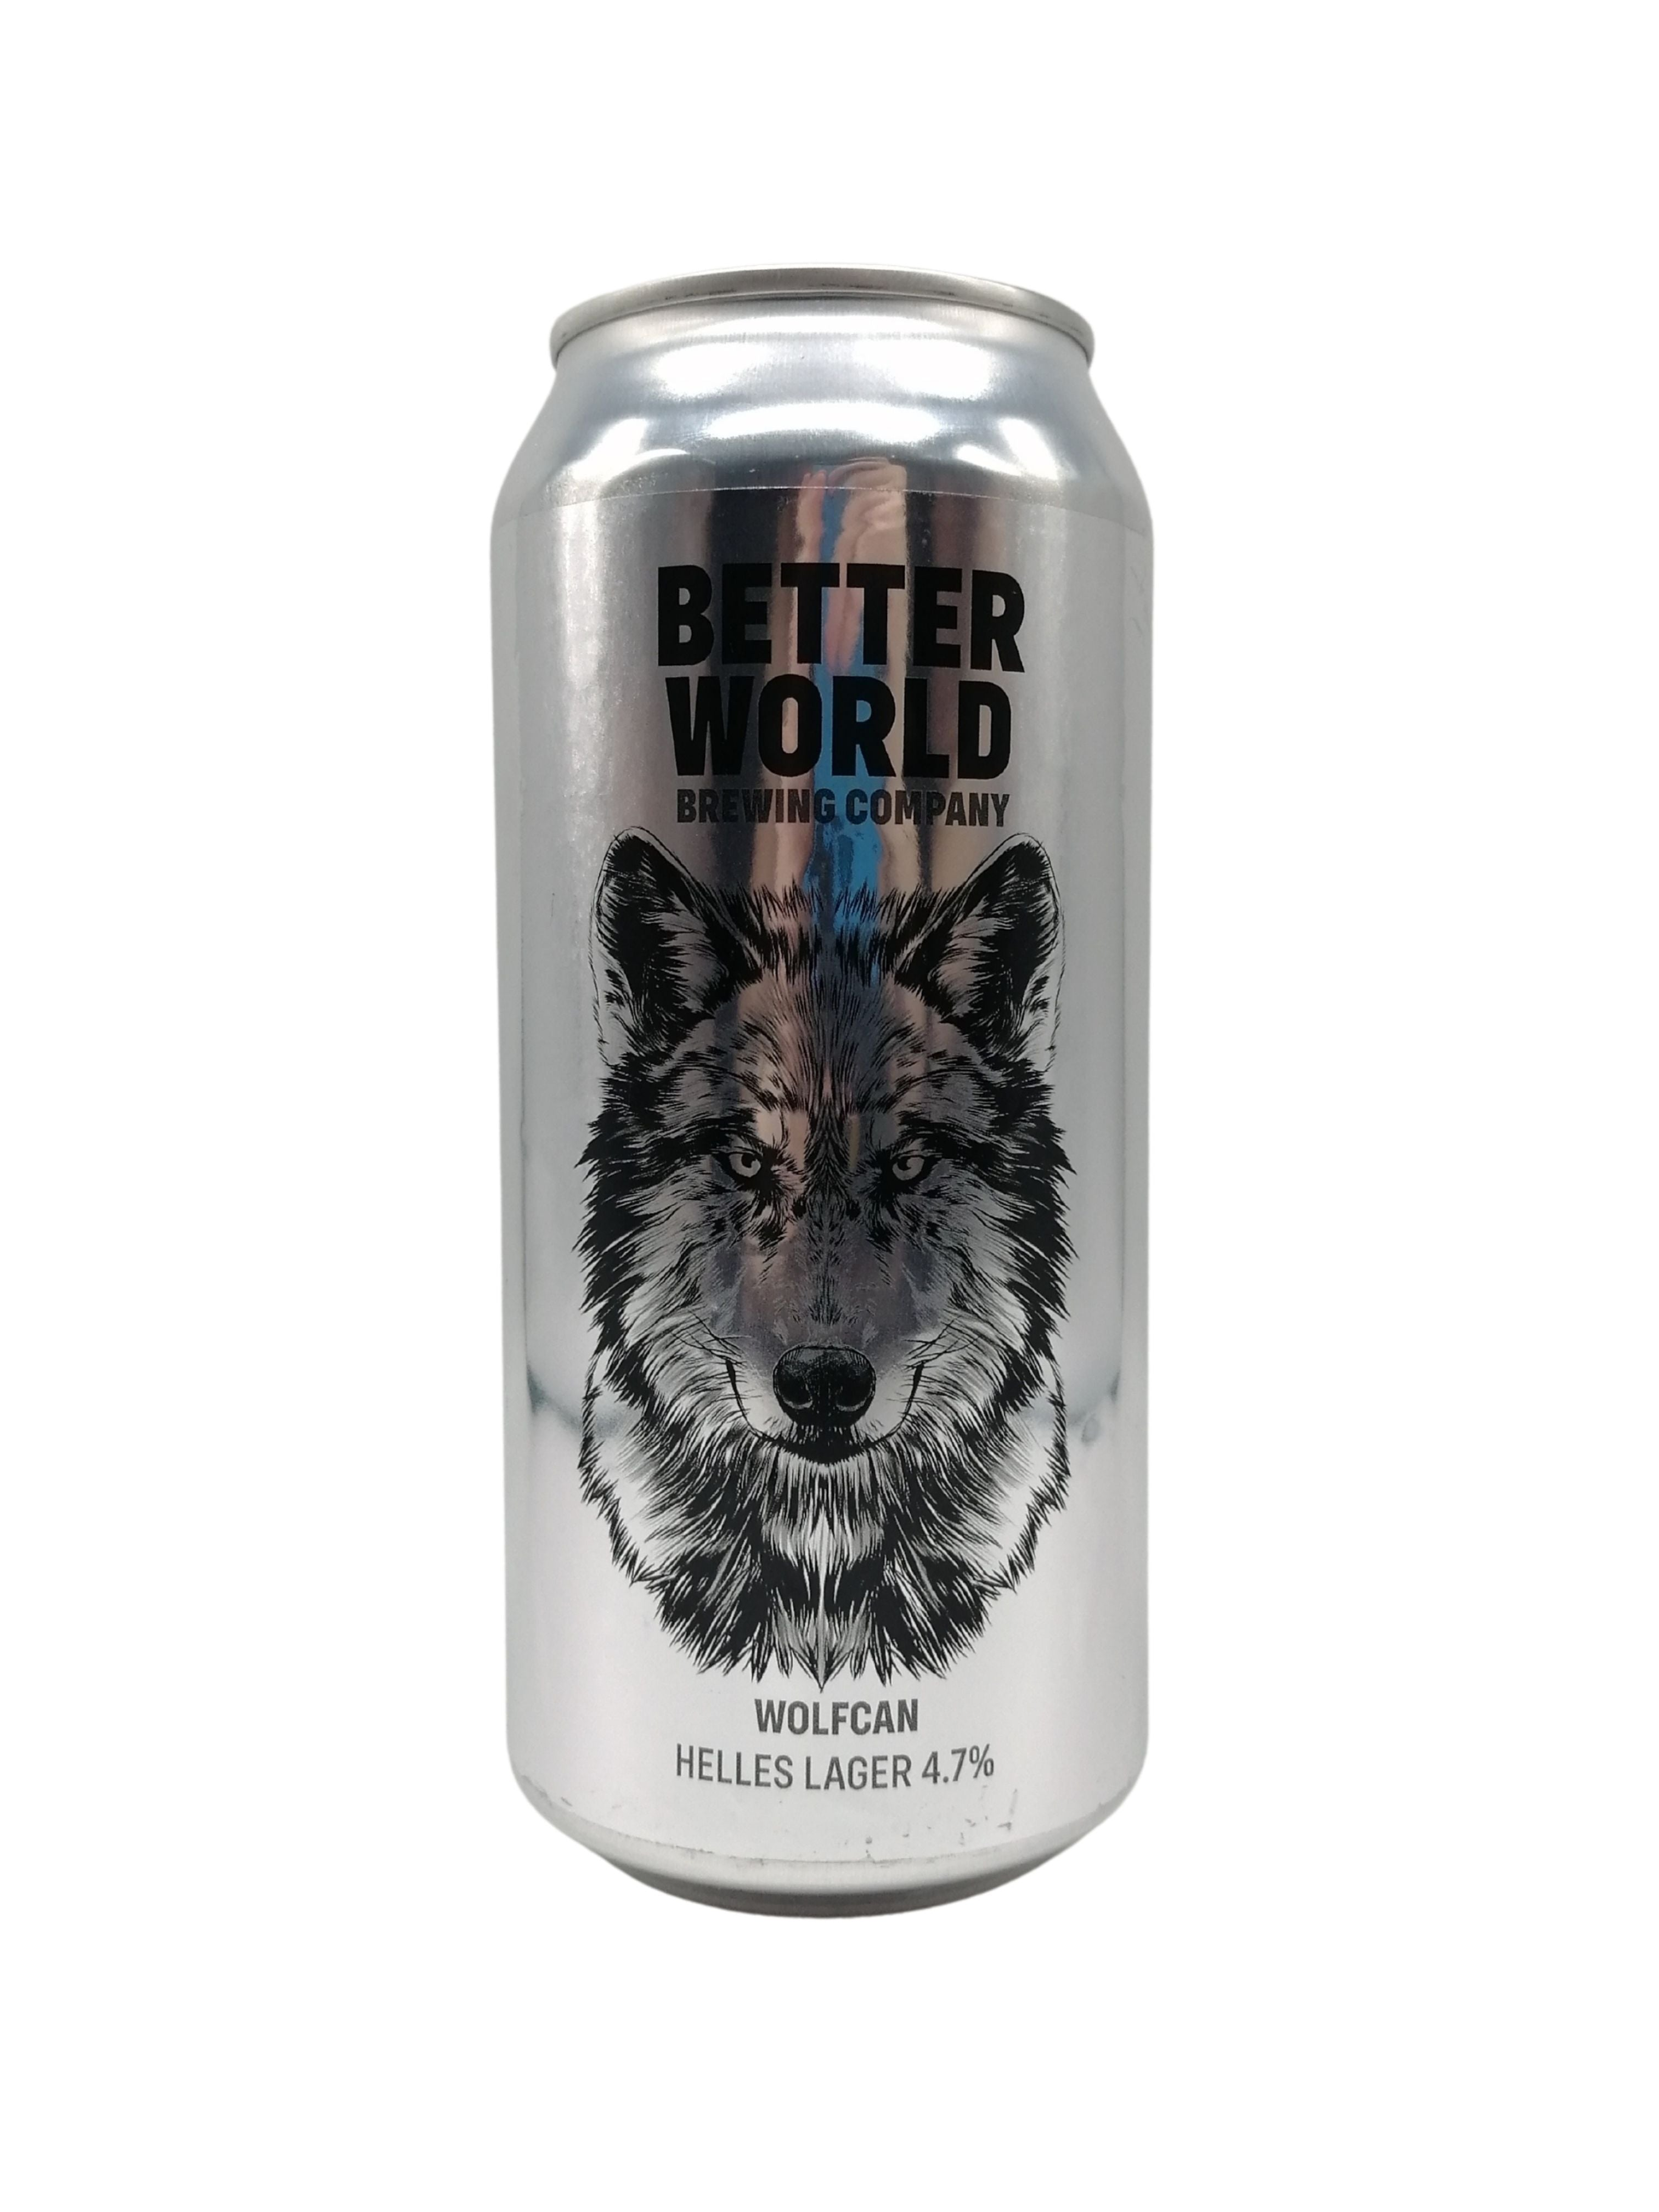 Better World - Wolfcan - Helles - 4.7% (Brand New) (Max 2 PP)